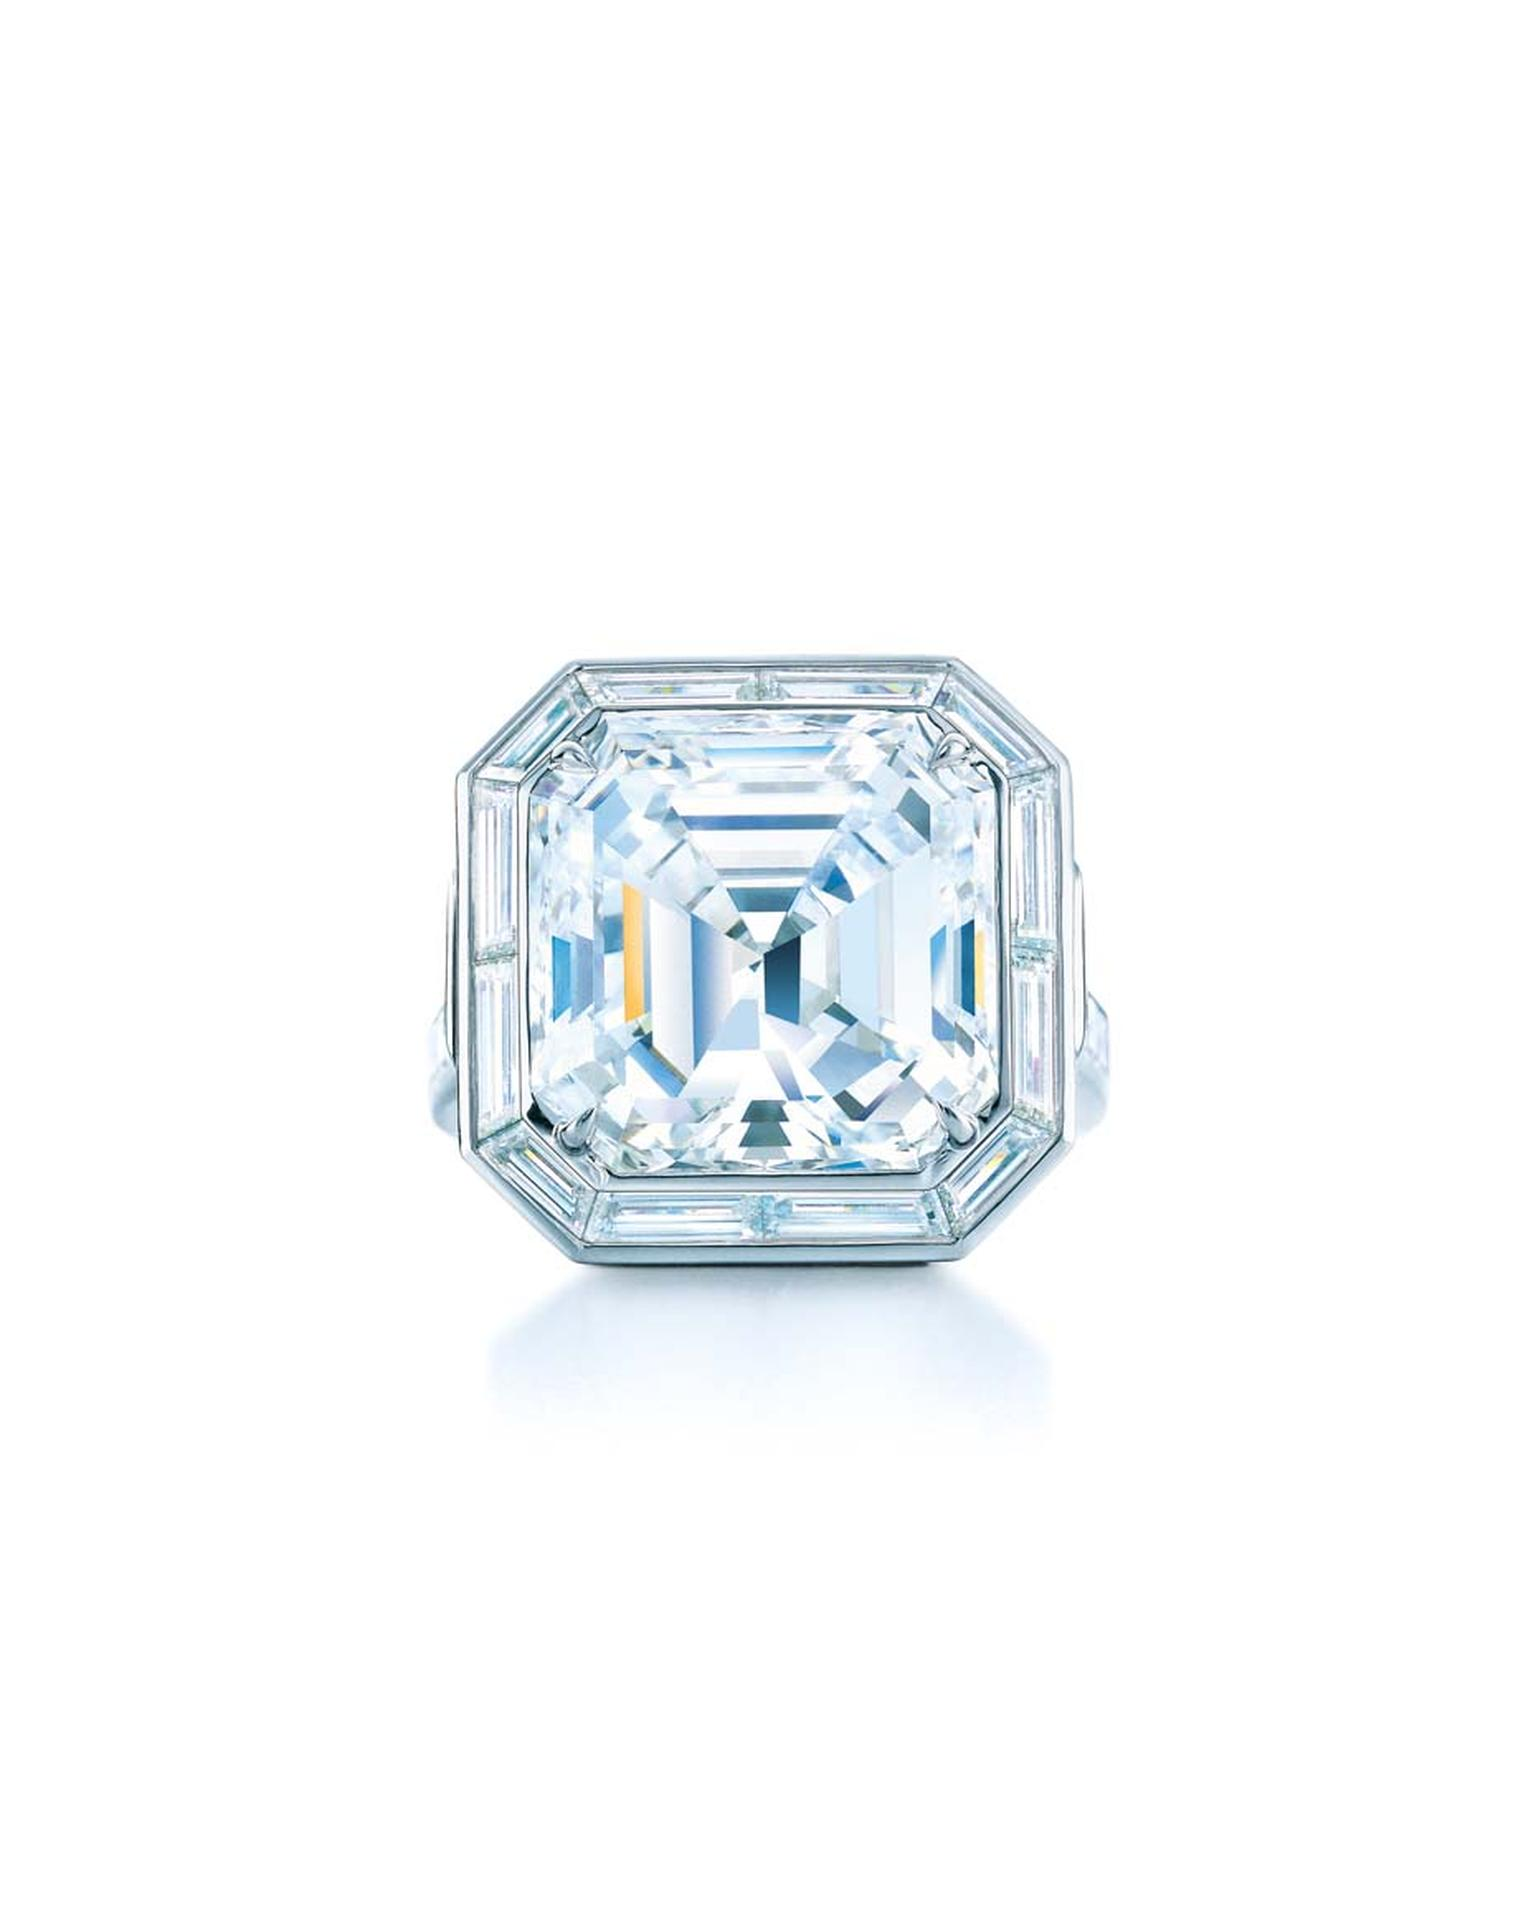 Tiffany & Co. emerald cut diamond engagement ring from their Blue Book collection.